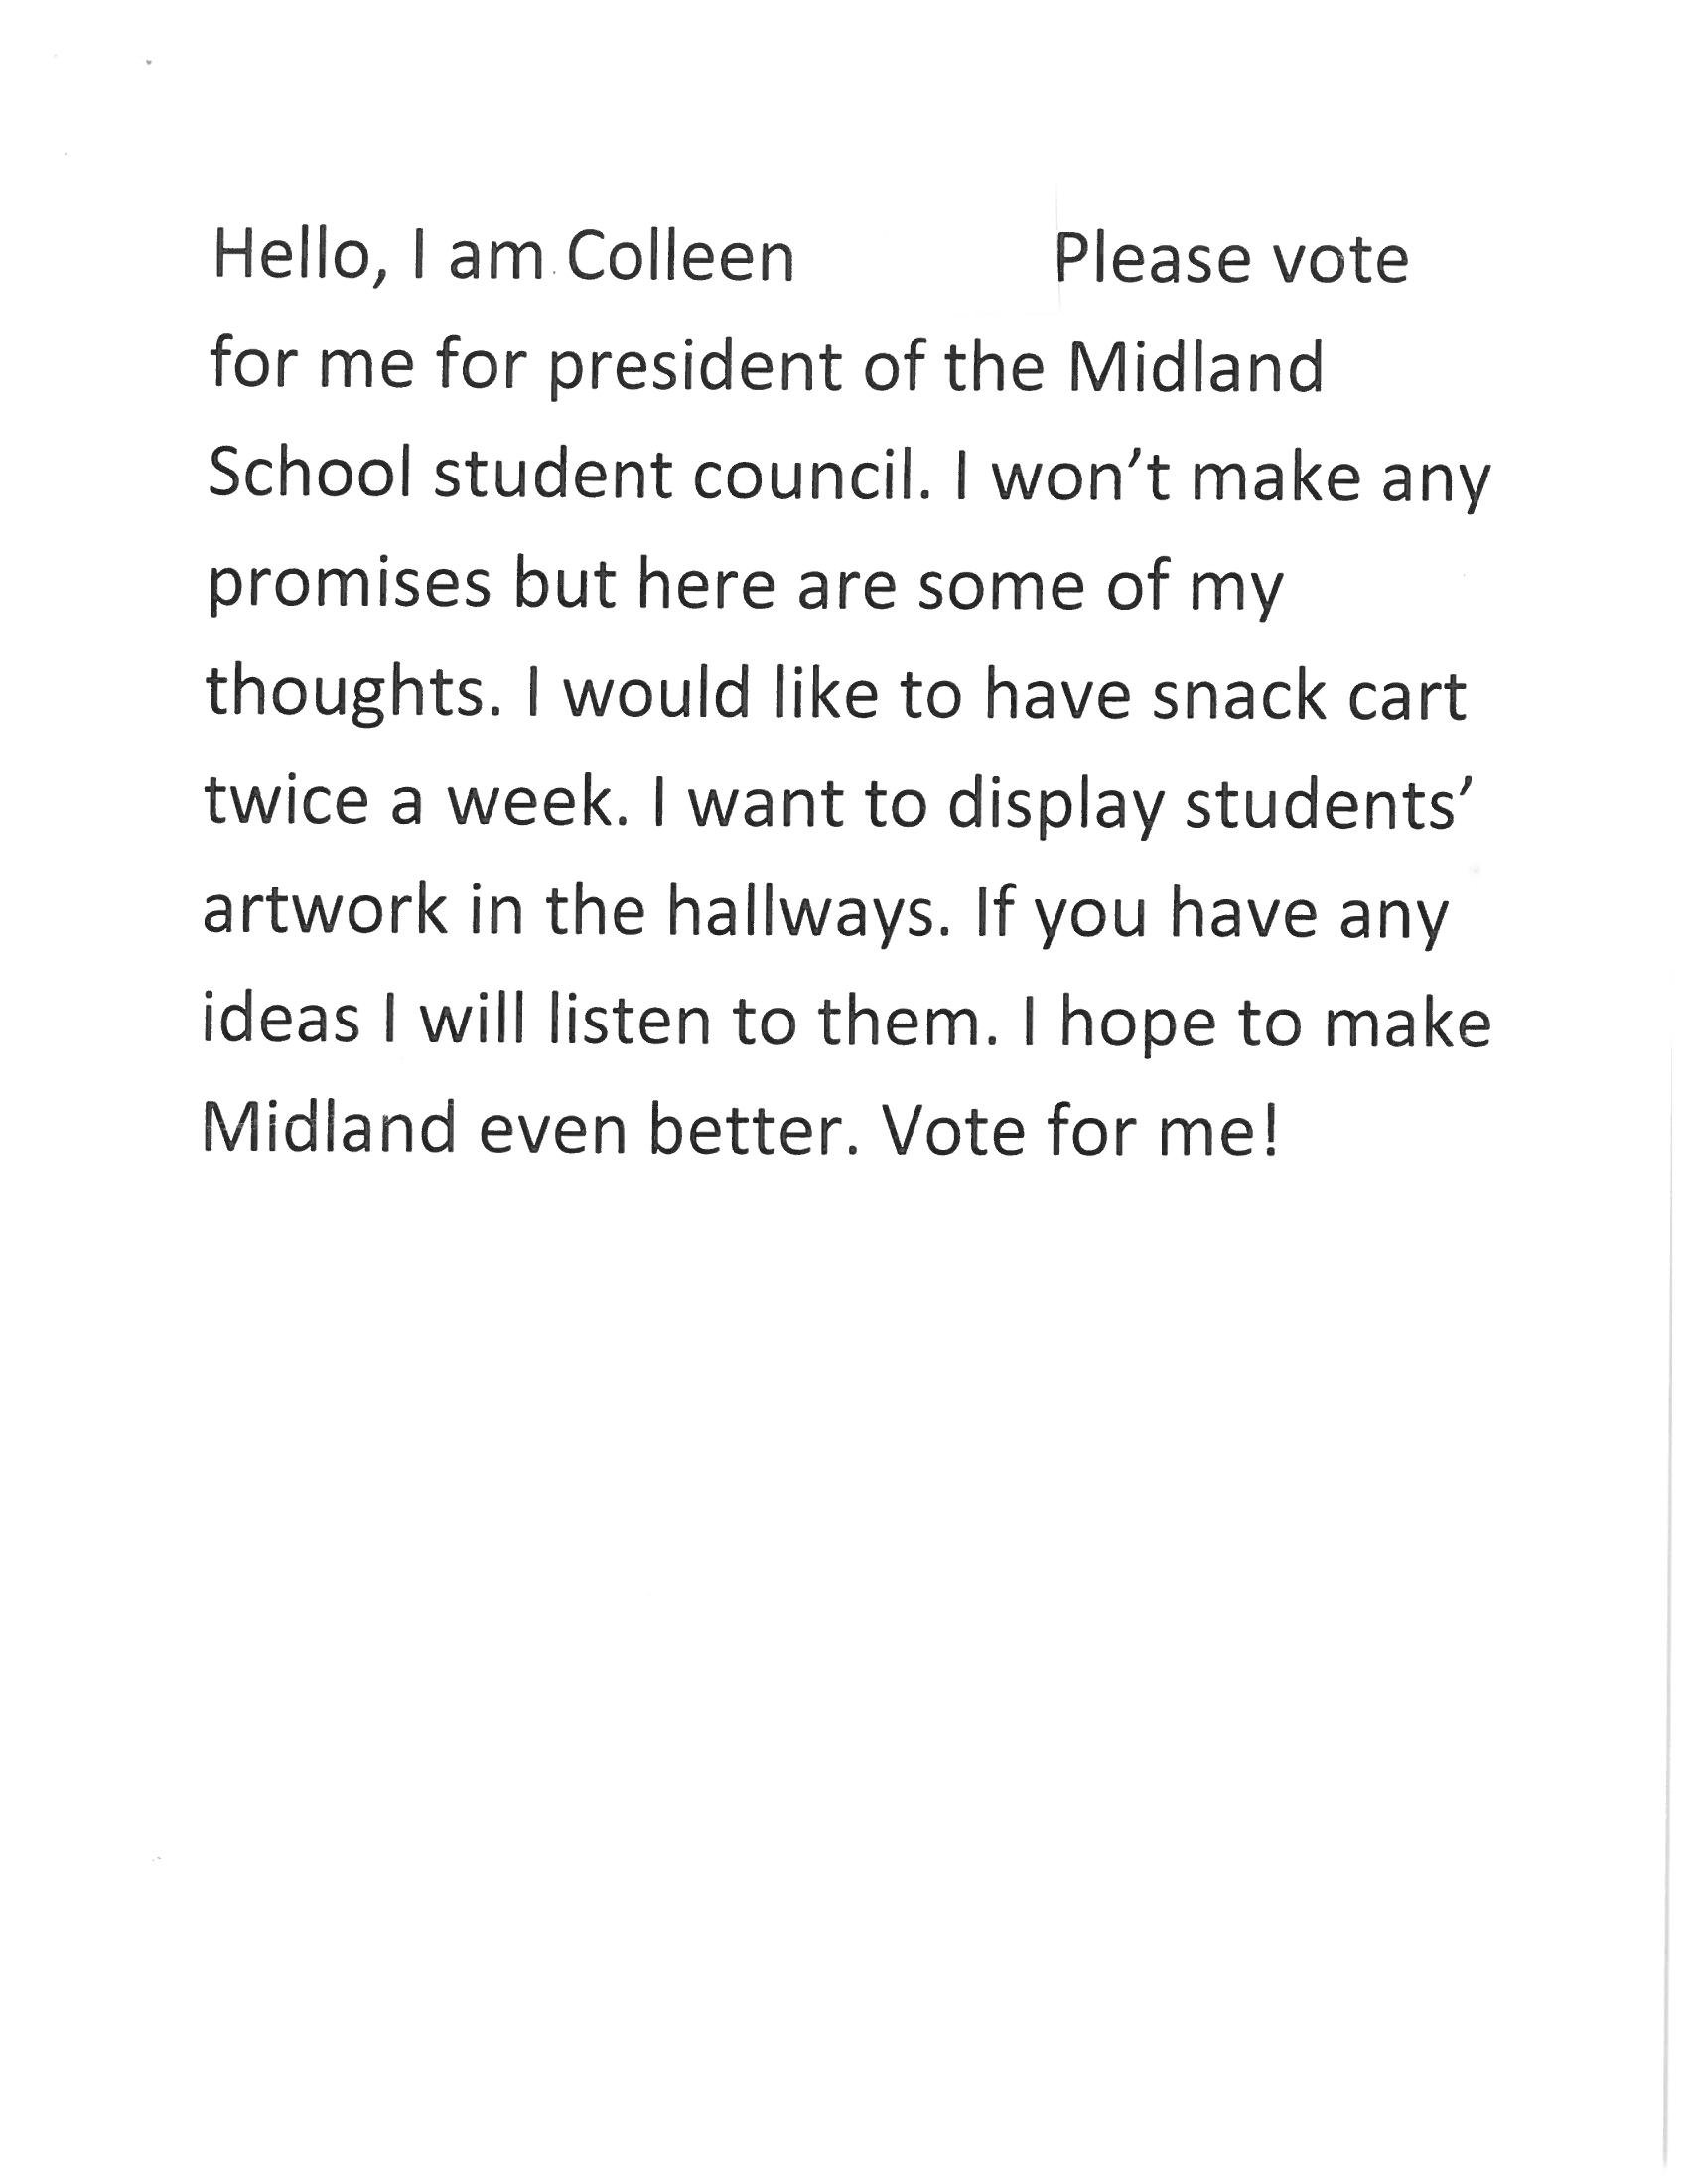 10 Fantastic Ideas For Student Council Speeches congratulations to all the candidates and voters midland school